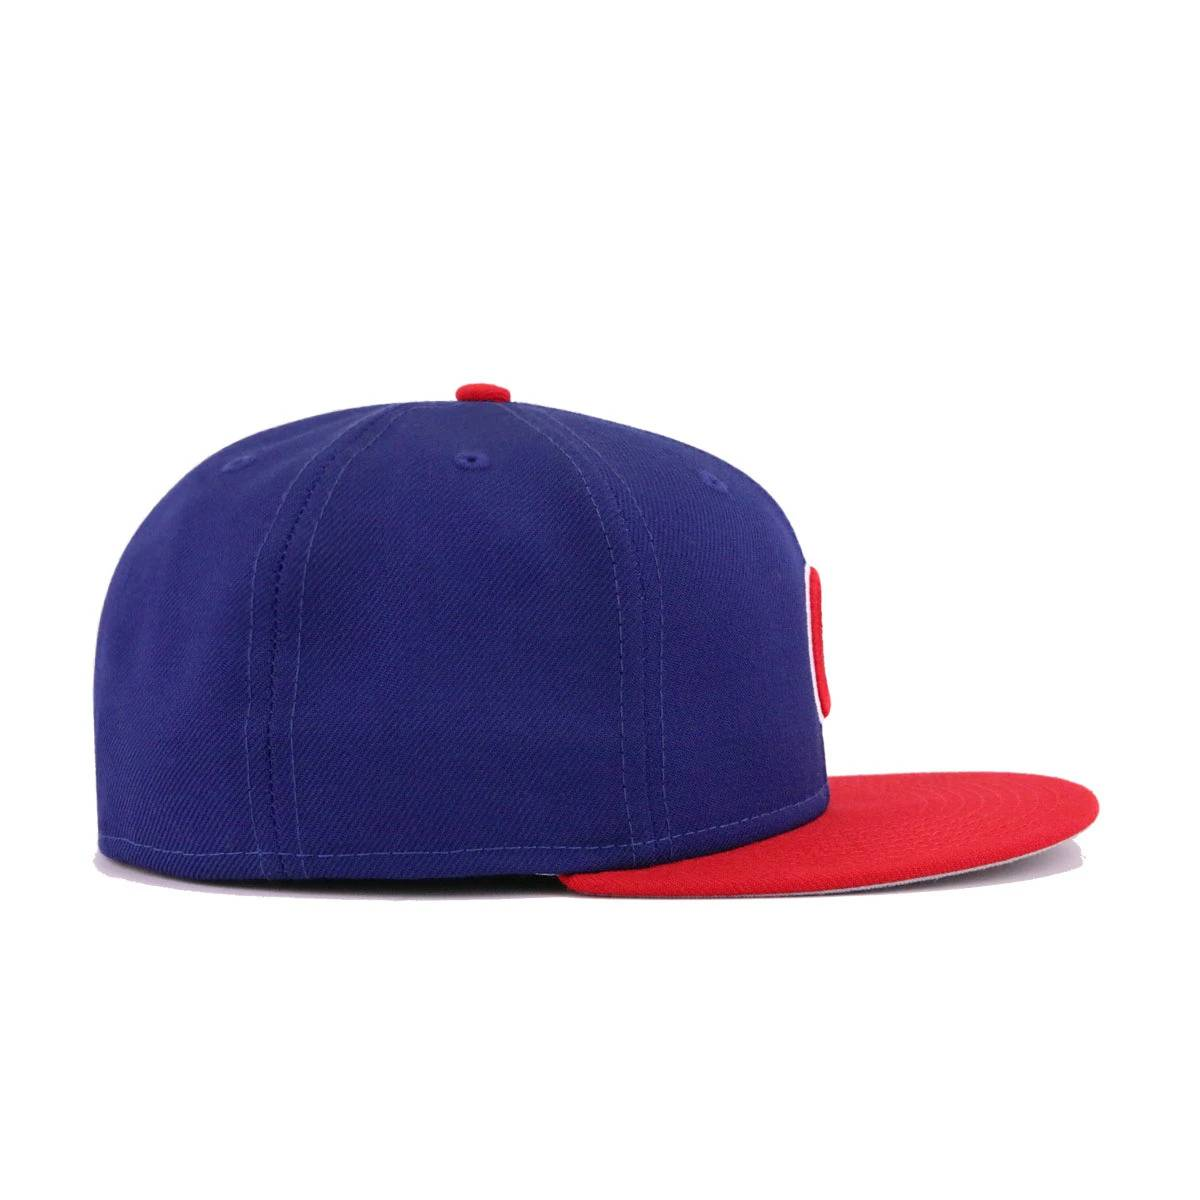 Chicago Cubs Dark Royal Blue Scarlet New Era 59Fifty Fitted